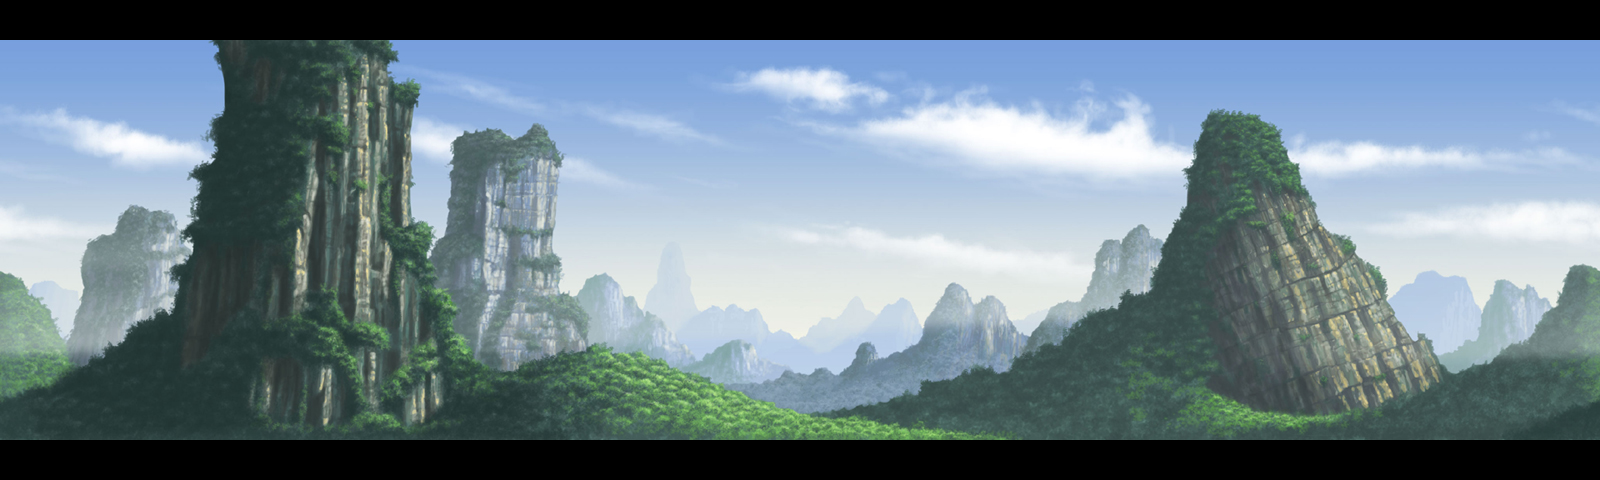 Chinese Landscape 01 by donjapy2011